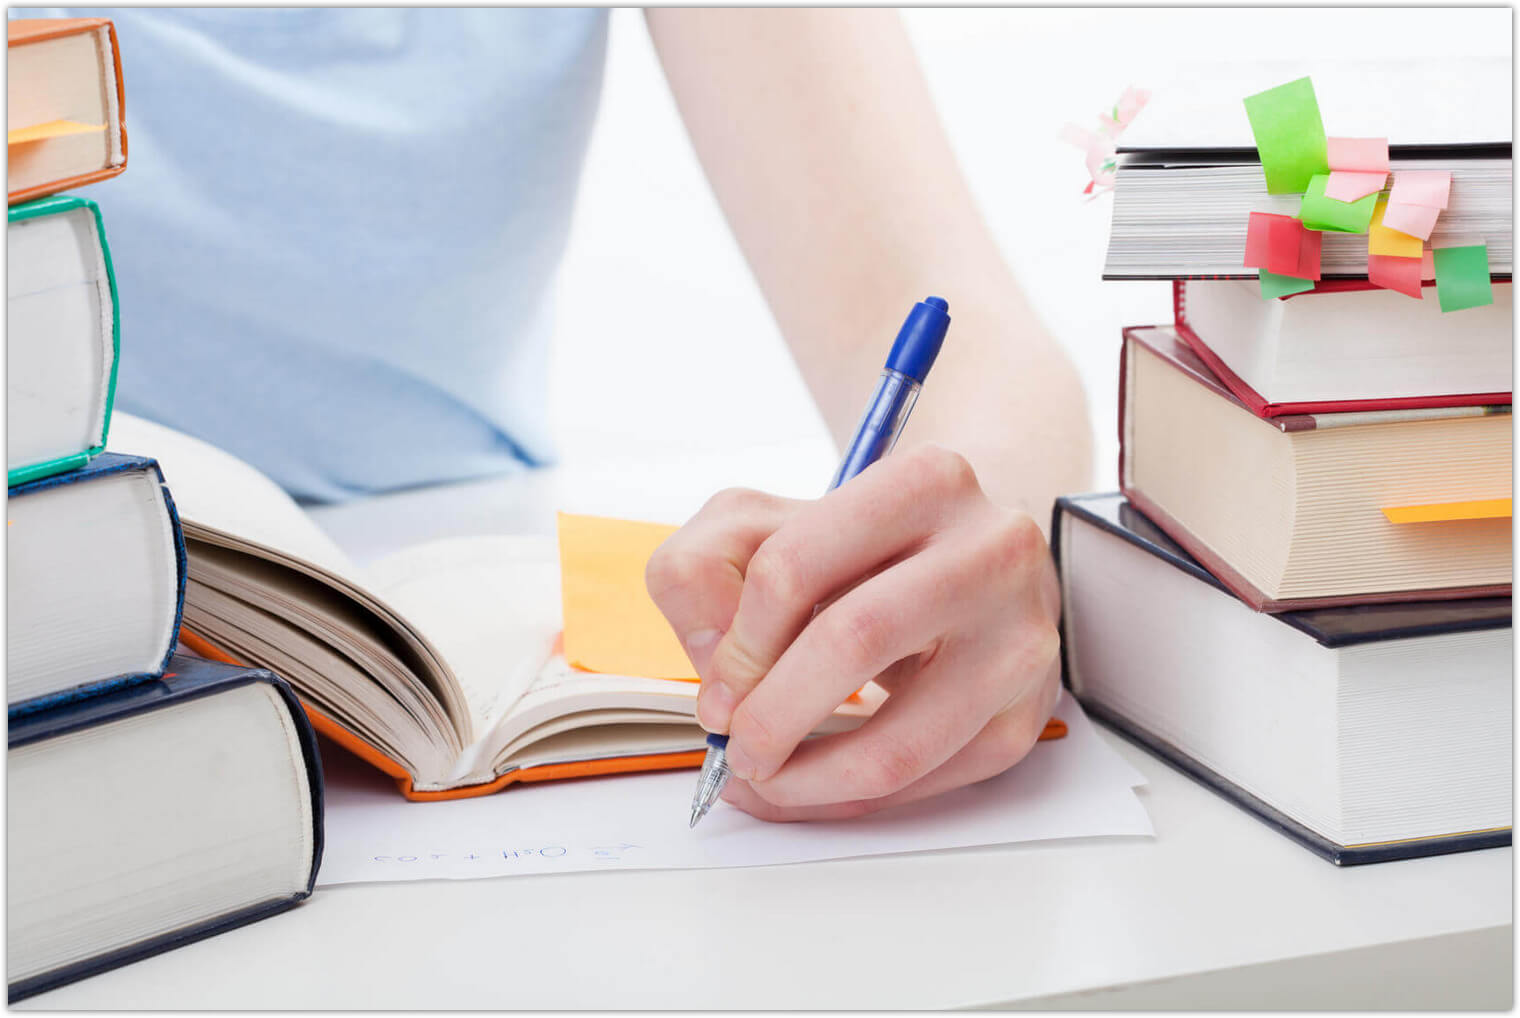 013 Research Paper Topics Help With Writing Fantastic Papers Assistance A Full